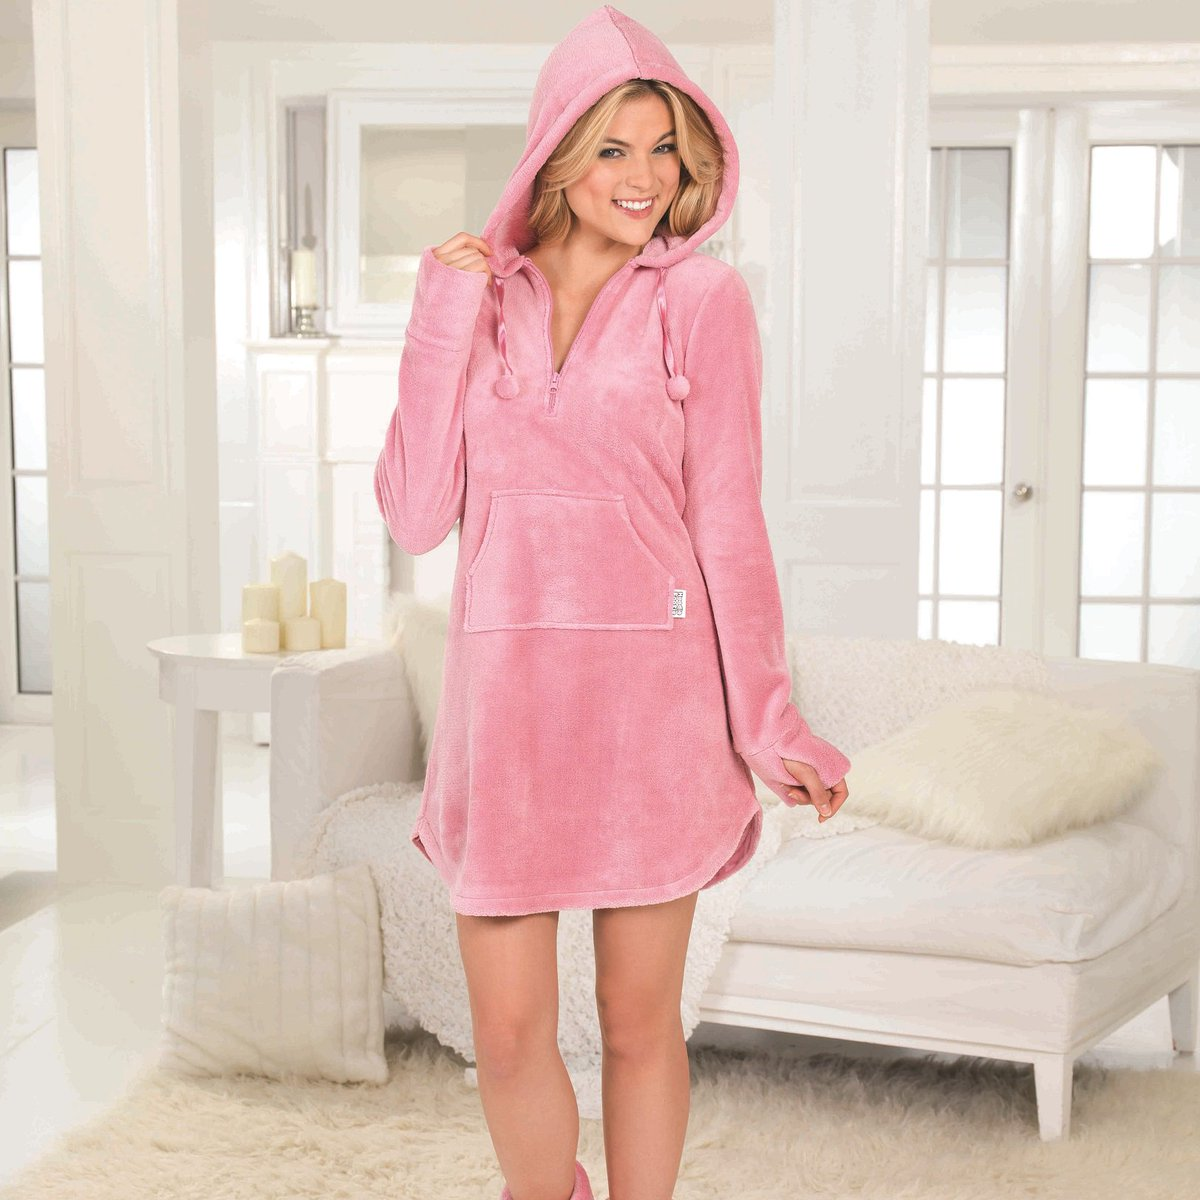 daa870655d 15% OFF all Hoodie Footie  PJs with code PGSPRING15! Snuggle ready from  head to toe    ...